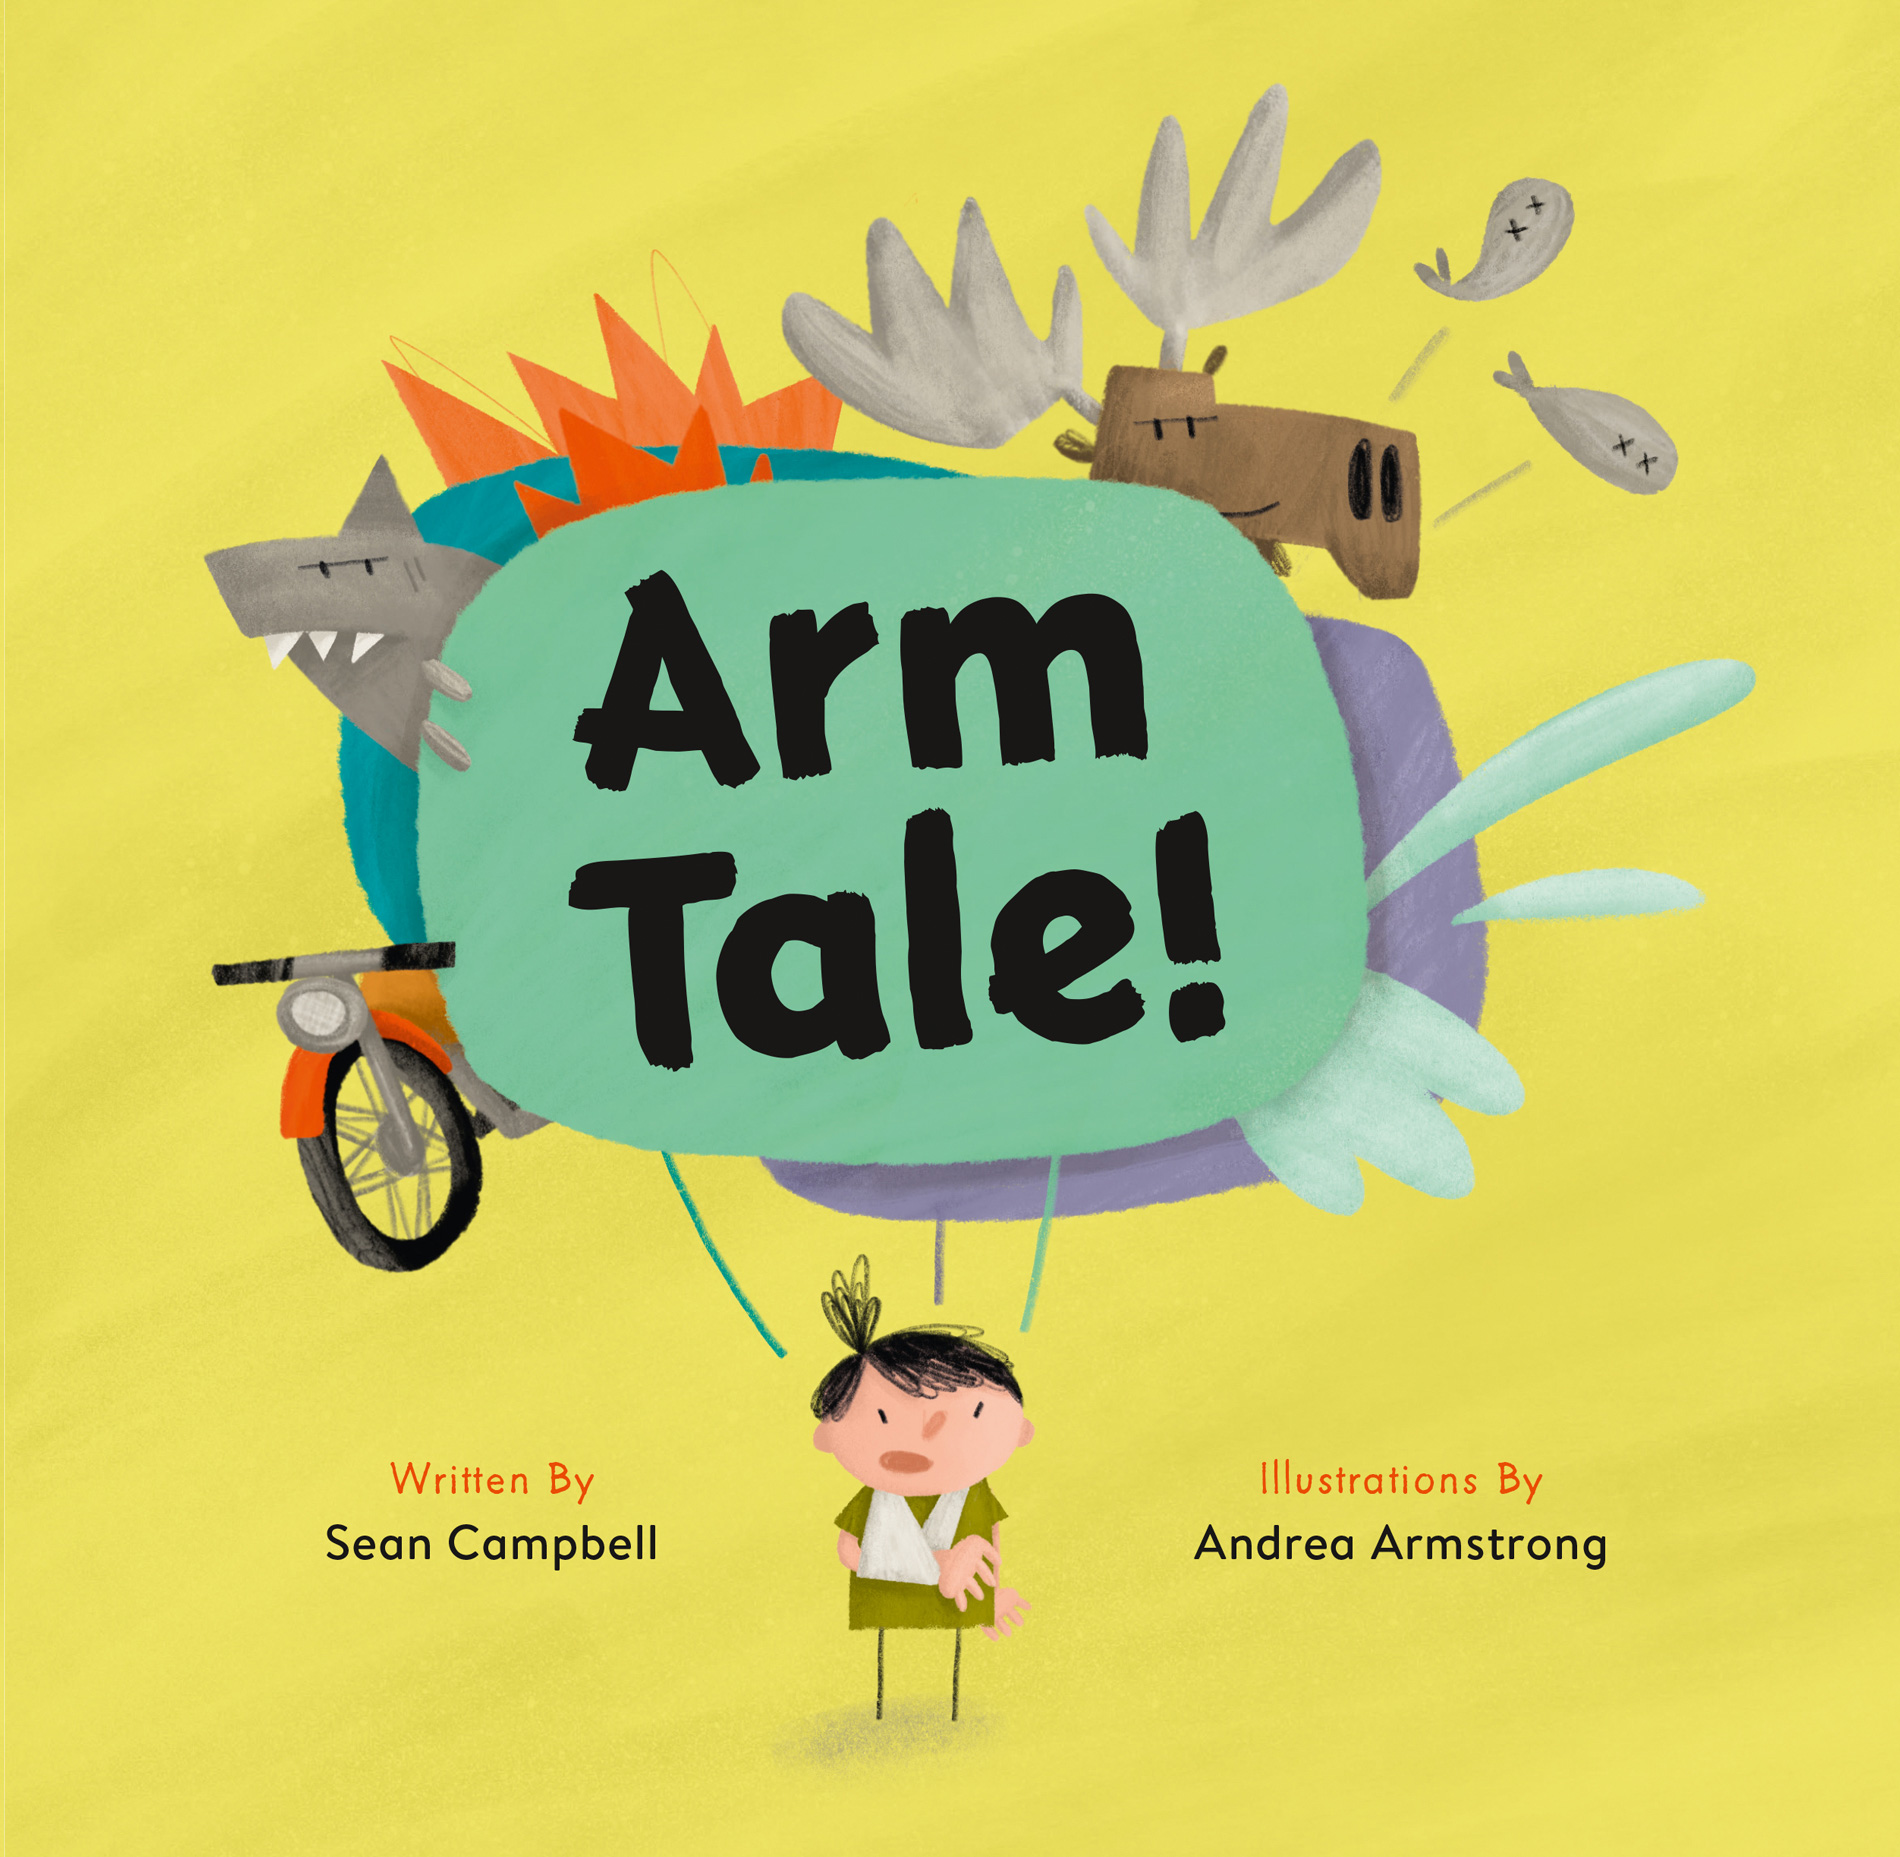 The recently published  Arm Tale  (Education Backpack, 2019) tells a story of a little girl who hurts her arm, and the outrageous story her friends invent to explain how.